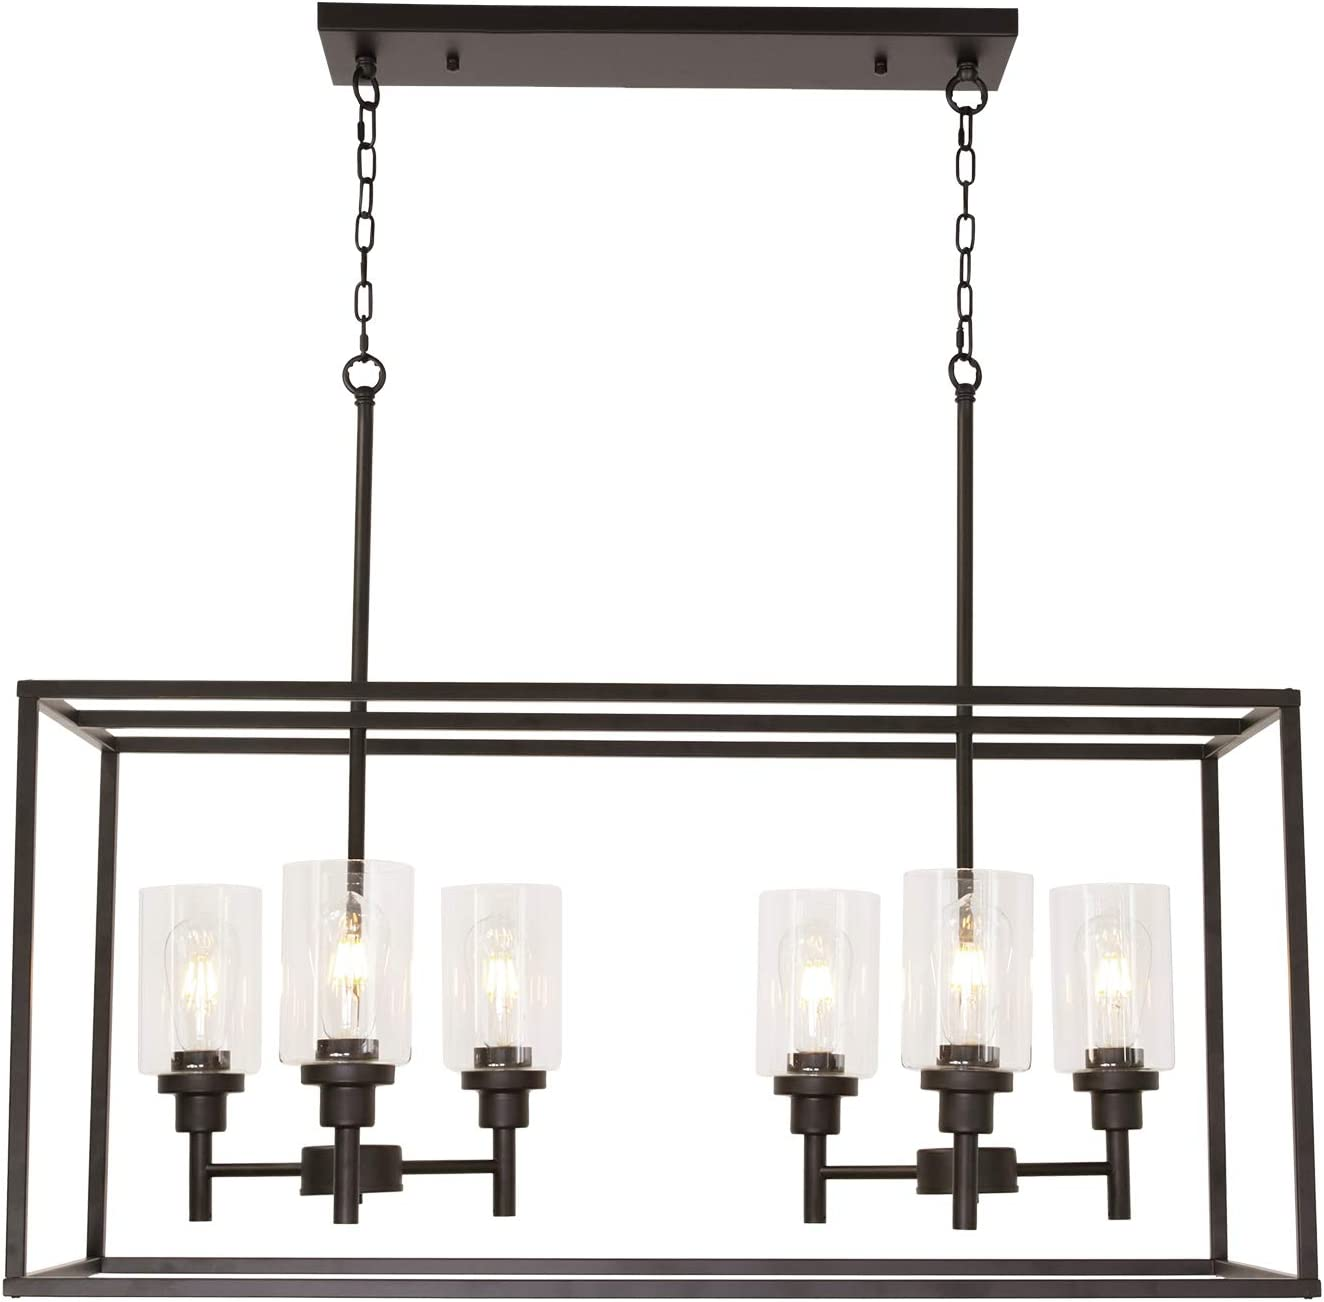 VINLUZ 6 Light Farmhouse Kitchen Island Lighting Oil Rubbed Bronze Dining Room Chandelier with Clear Glass Shade for Kitchen Bar